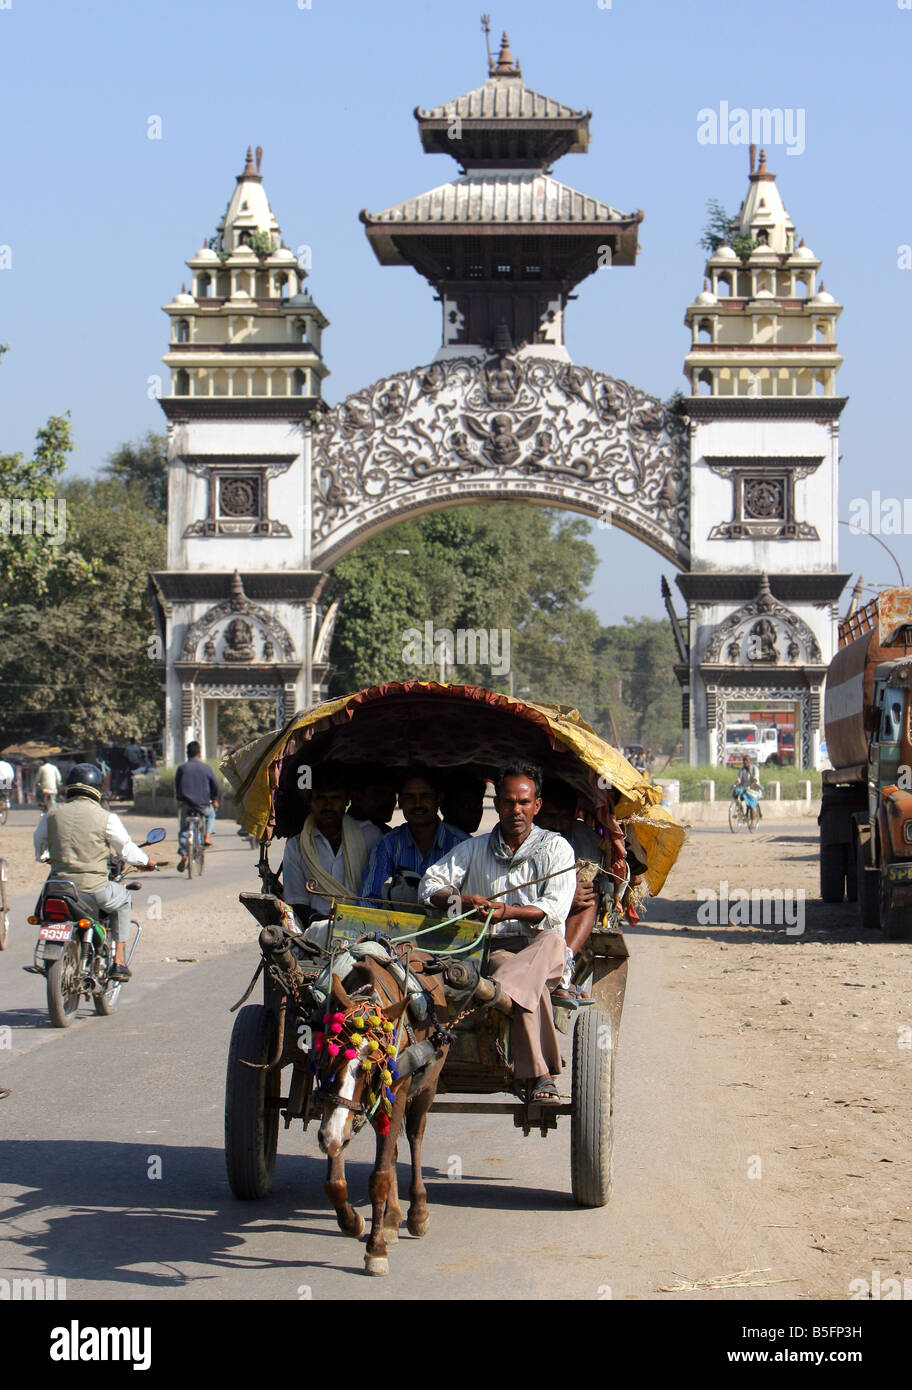 Nepal+India: Gate marks the border between India and Nepal at the nepalese town of Birgunj - Stock Image